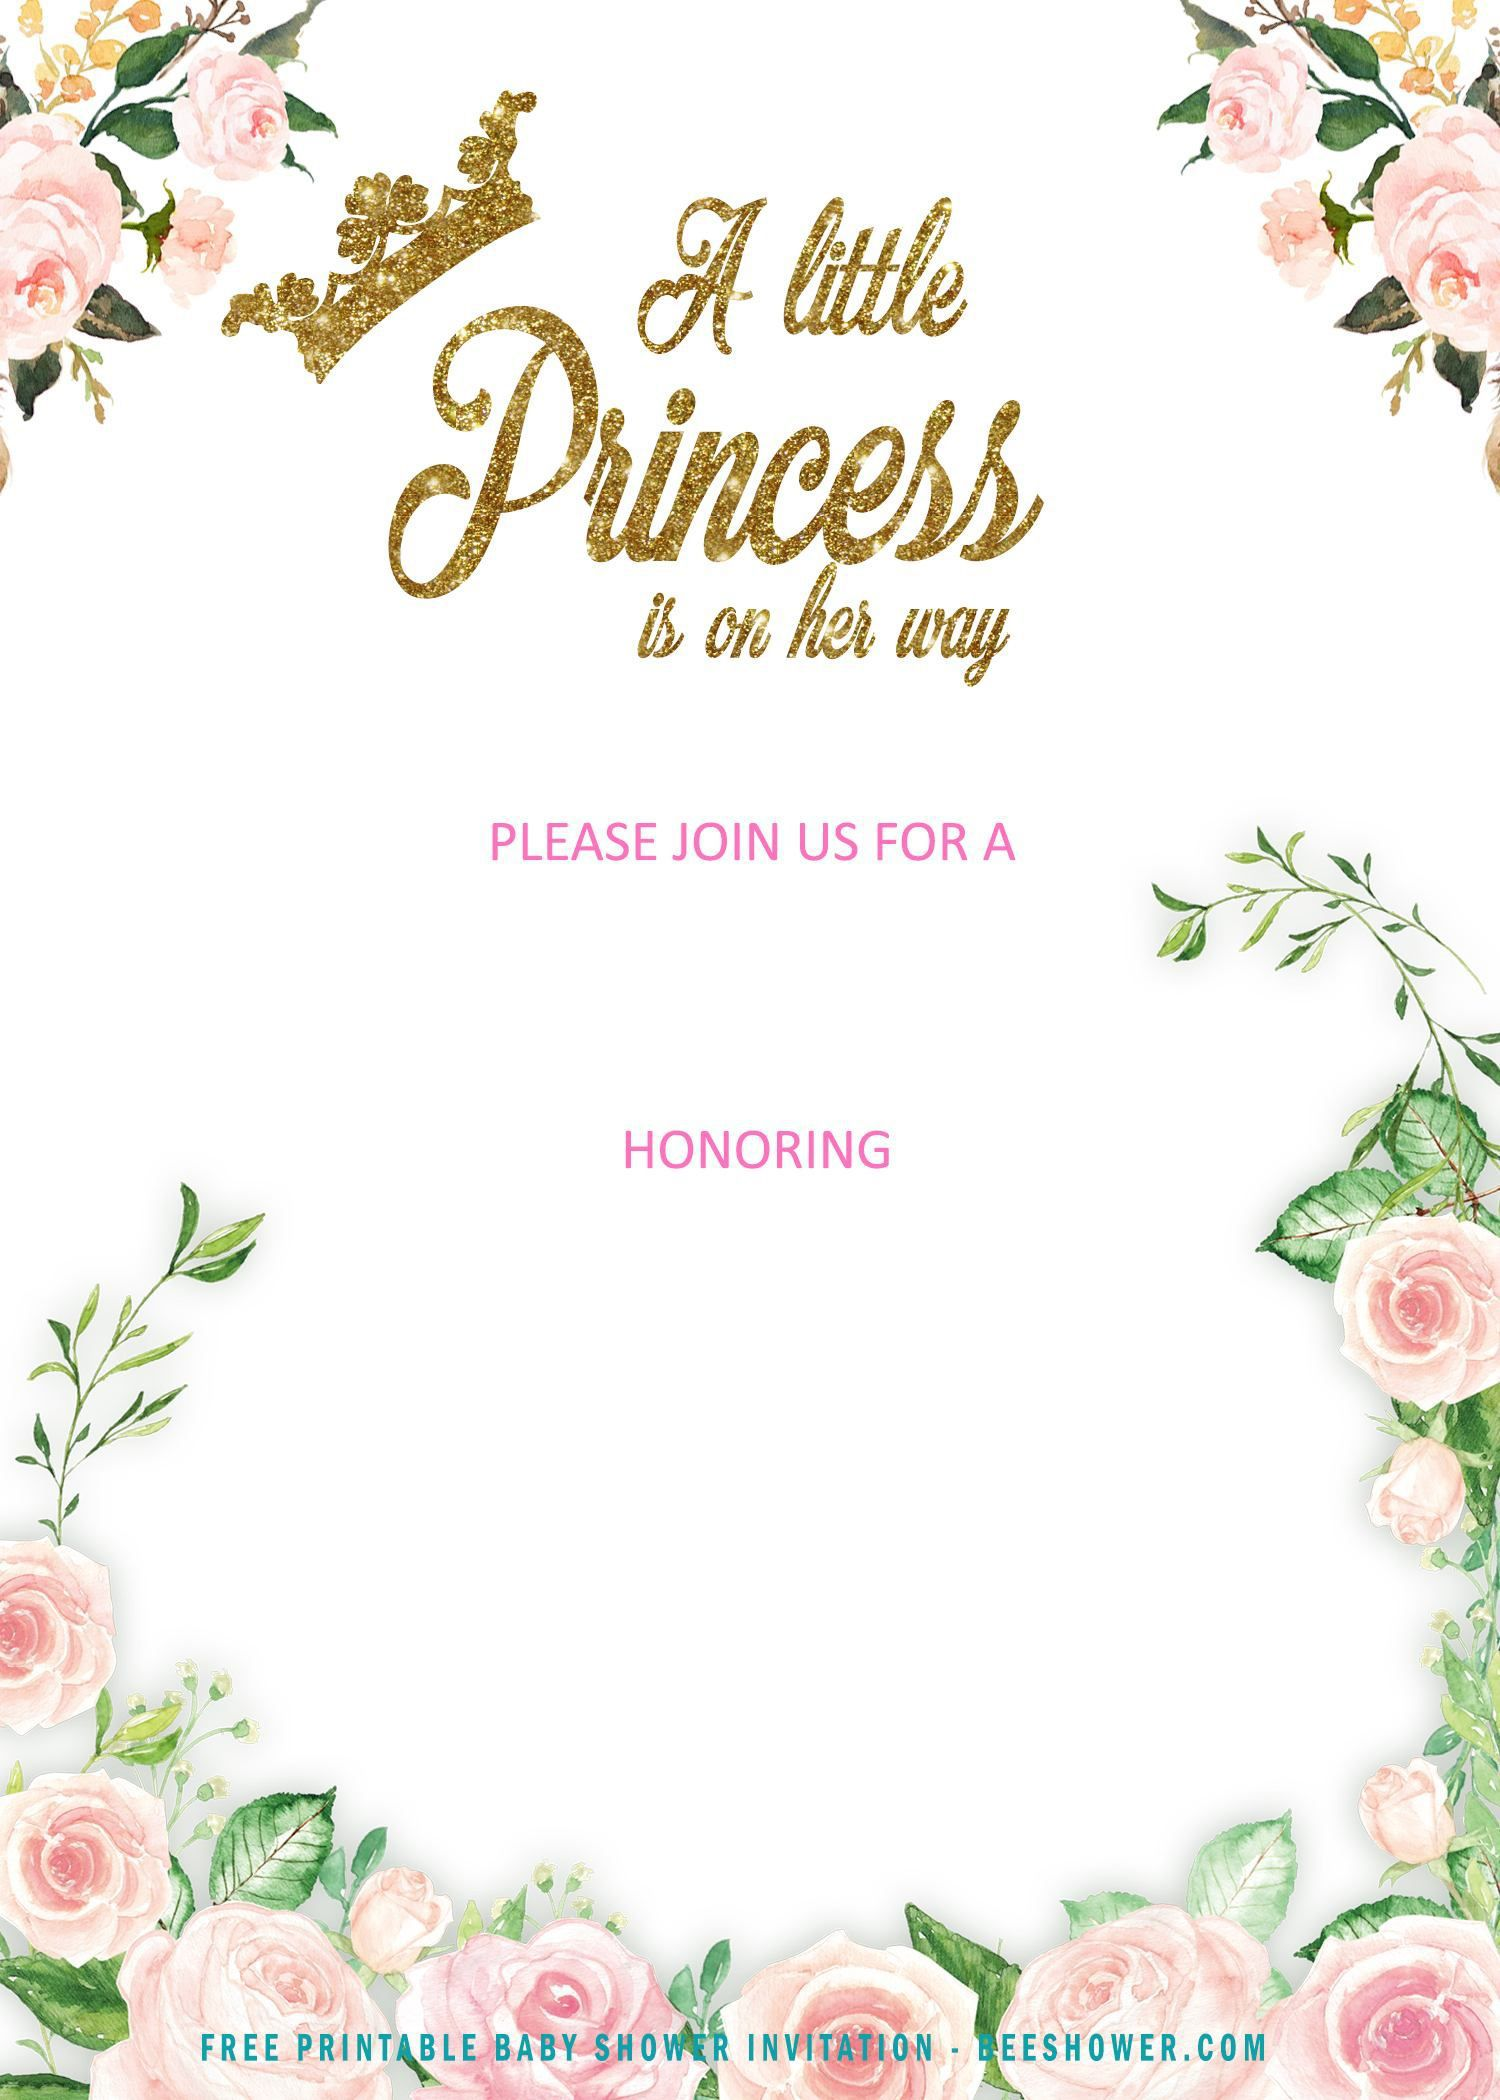 006 Incredible Free Princes Baby Shower Invitation Template For Word Sample Full